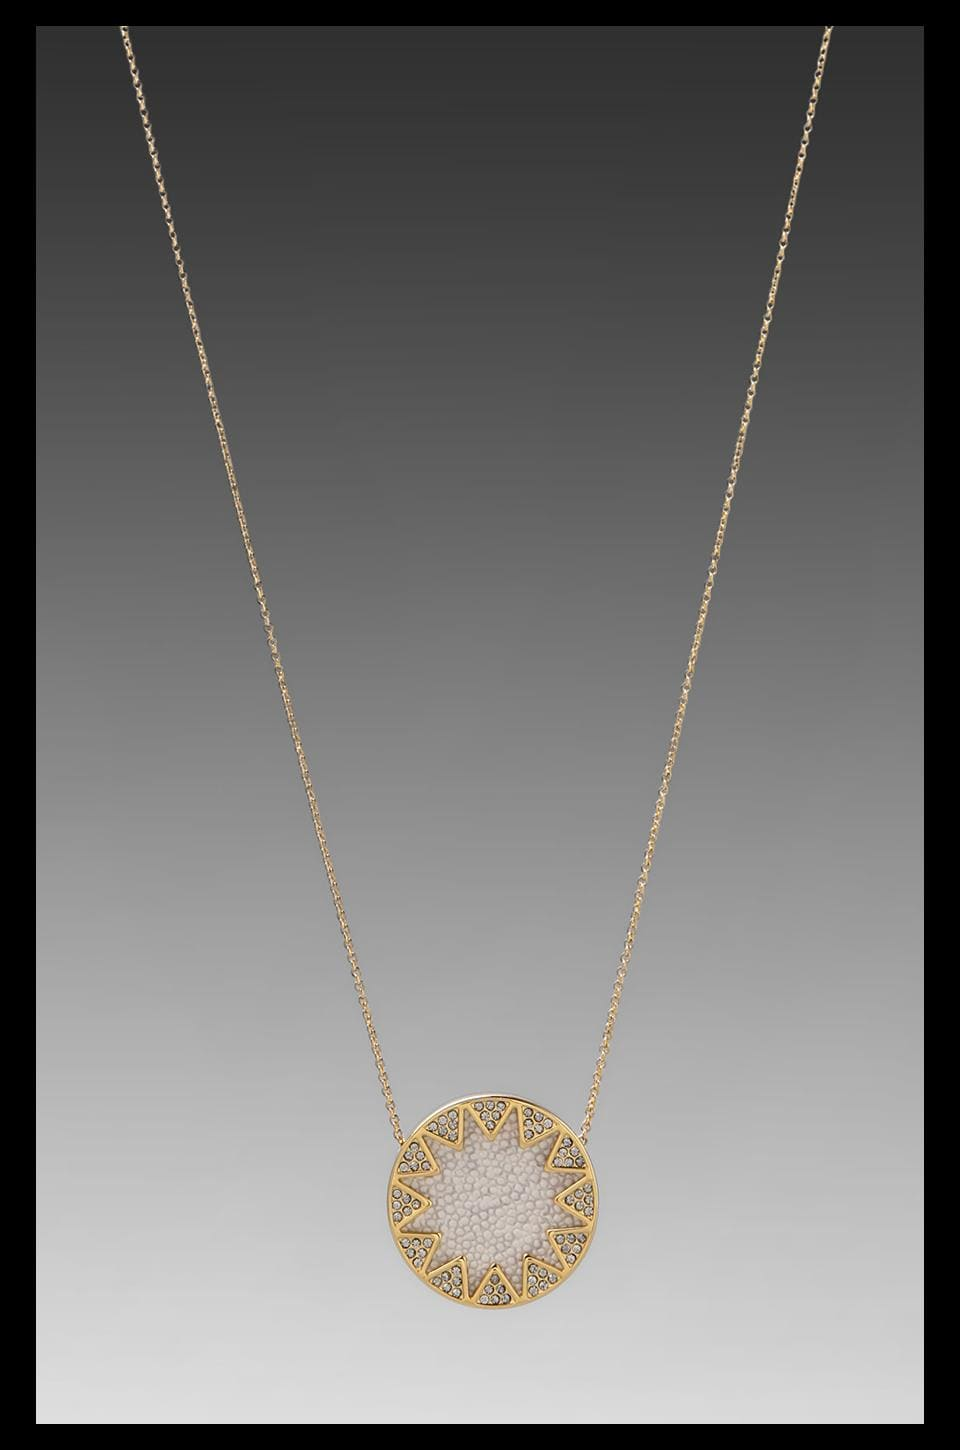 House of Harlow White Sand Sunburst Station Necklace in Sting Ray Pave